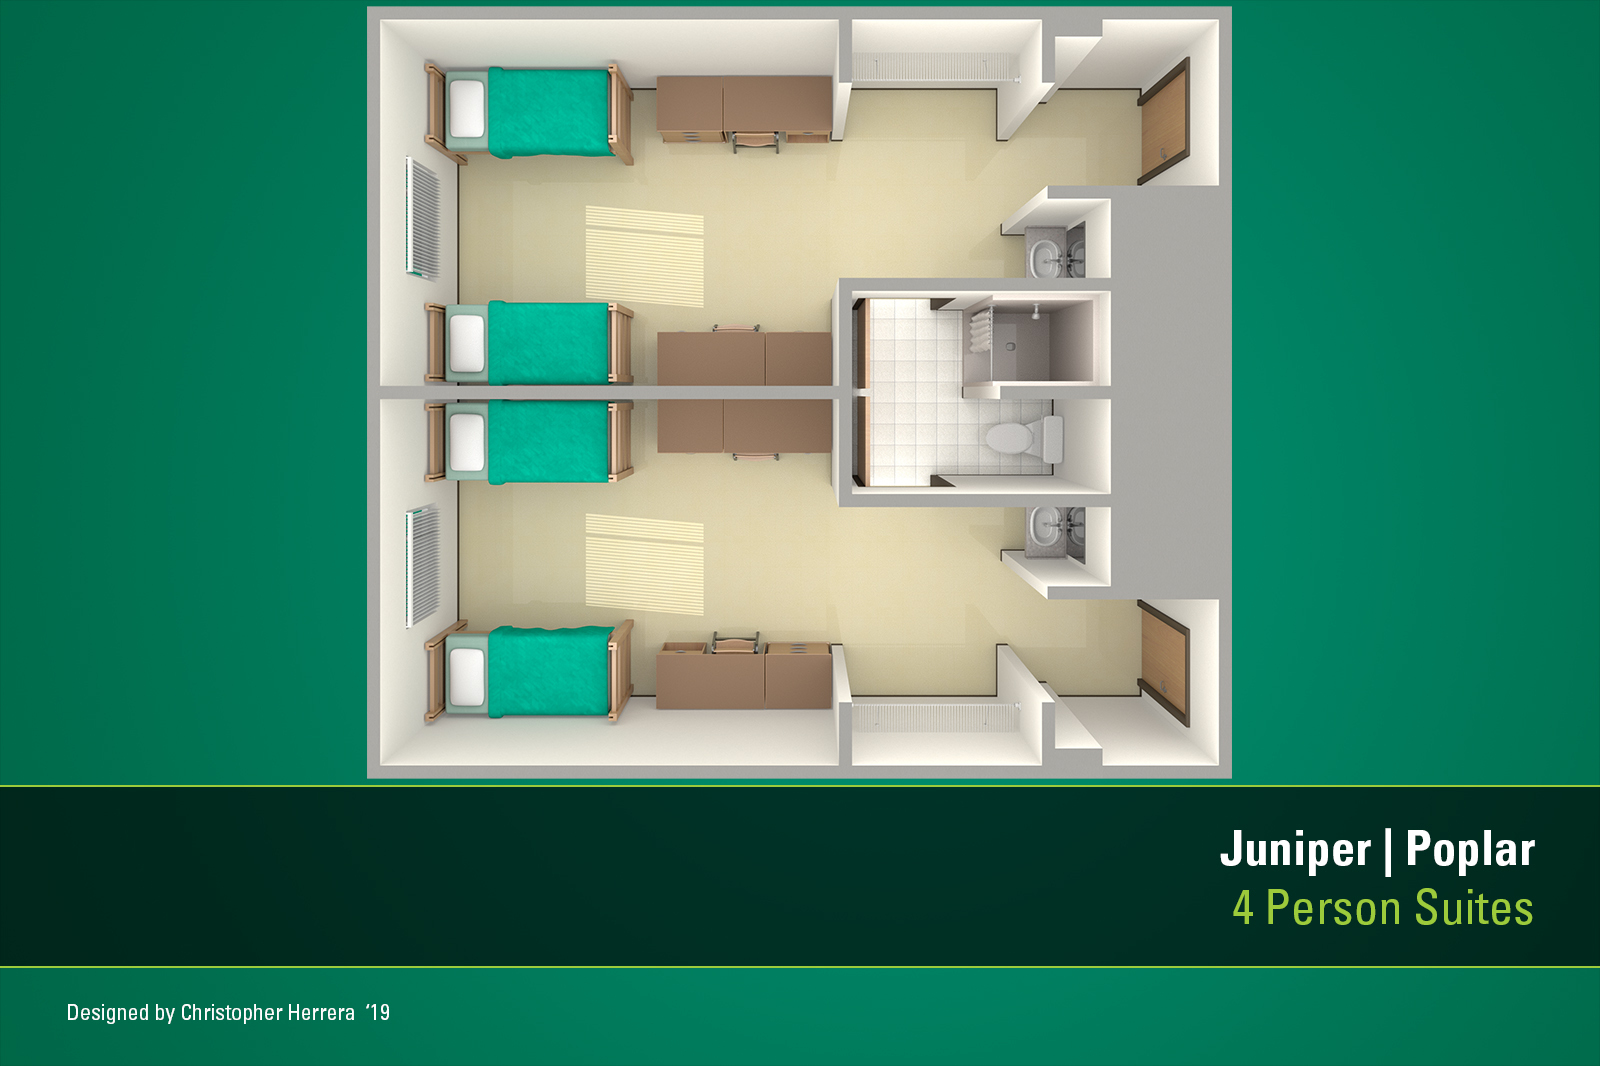 USF Tampa housing apartment floor plan for Juniper-Poplar Hall.